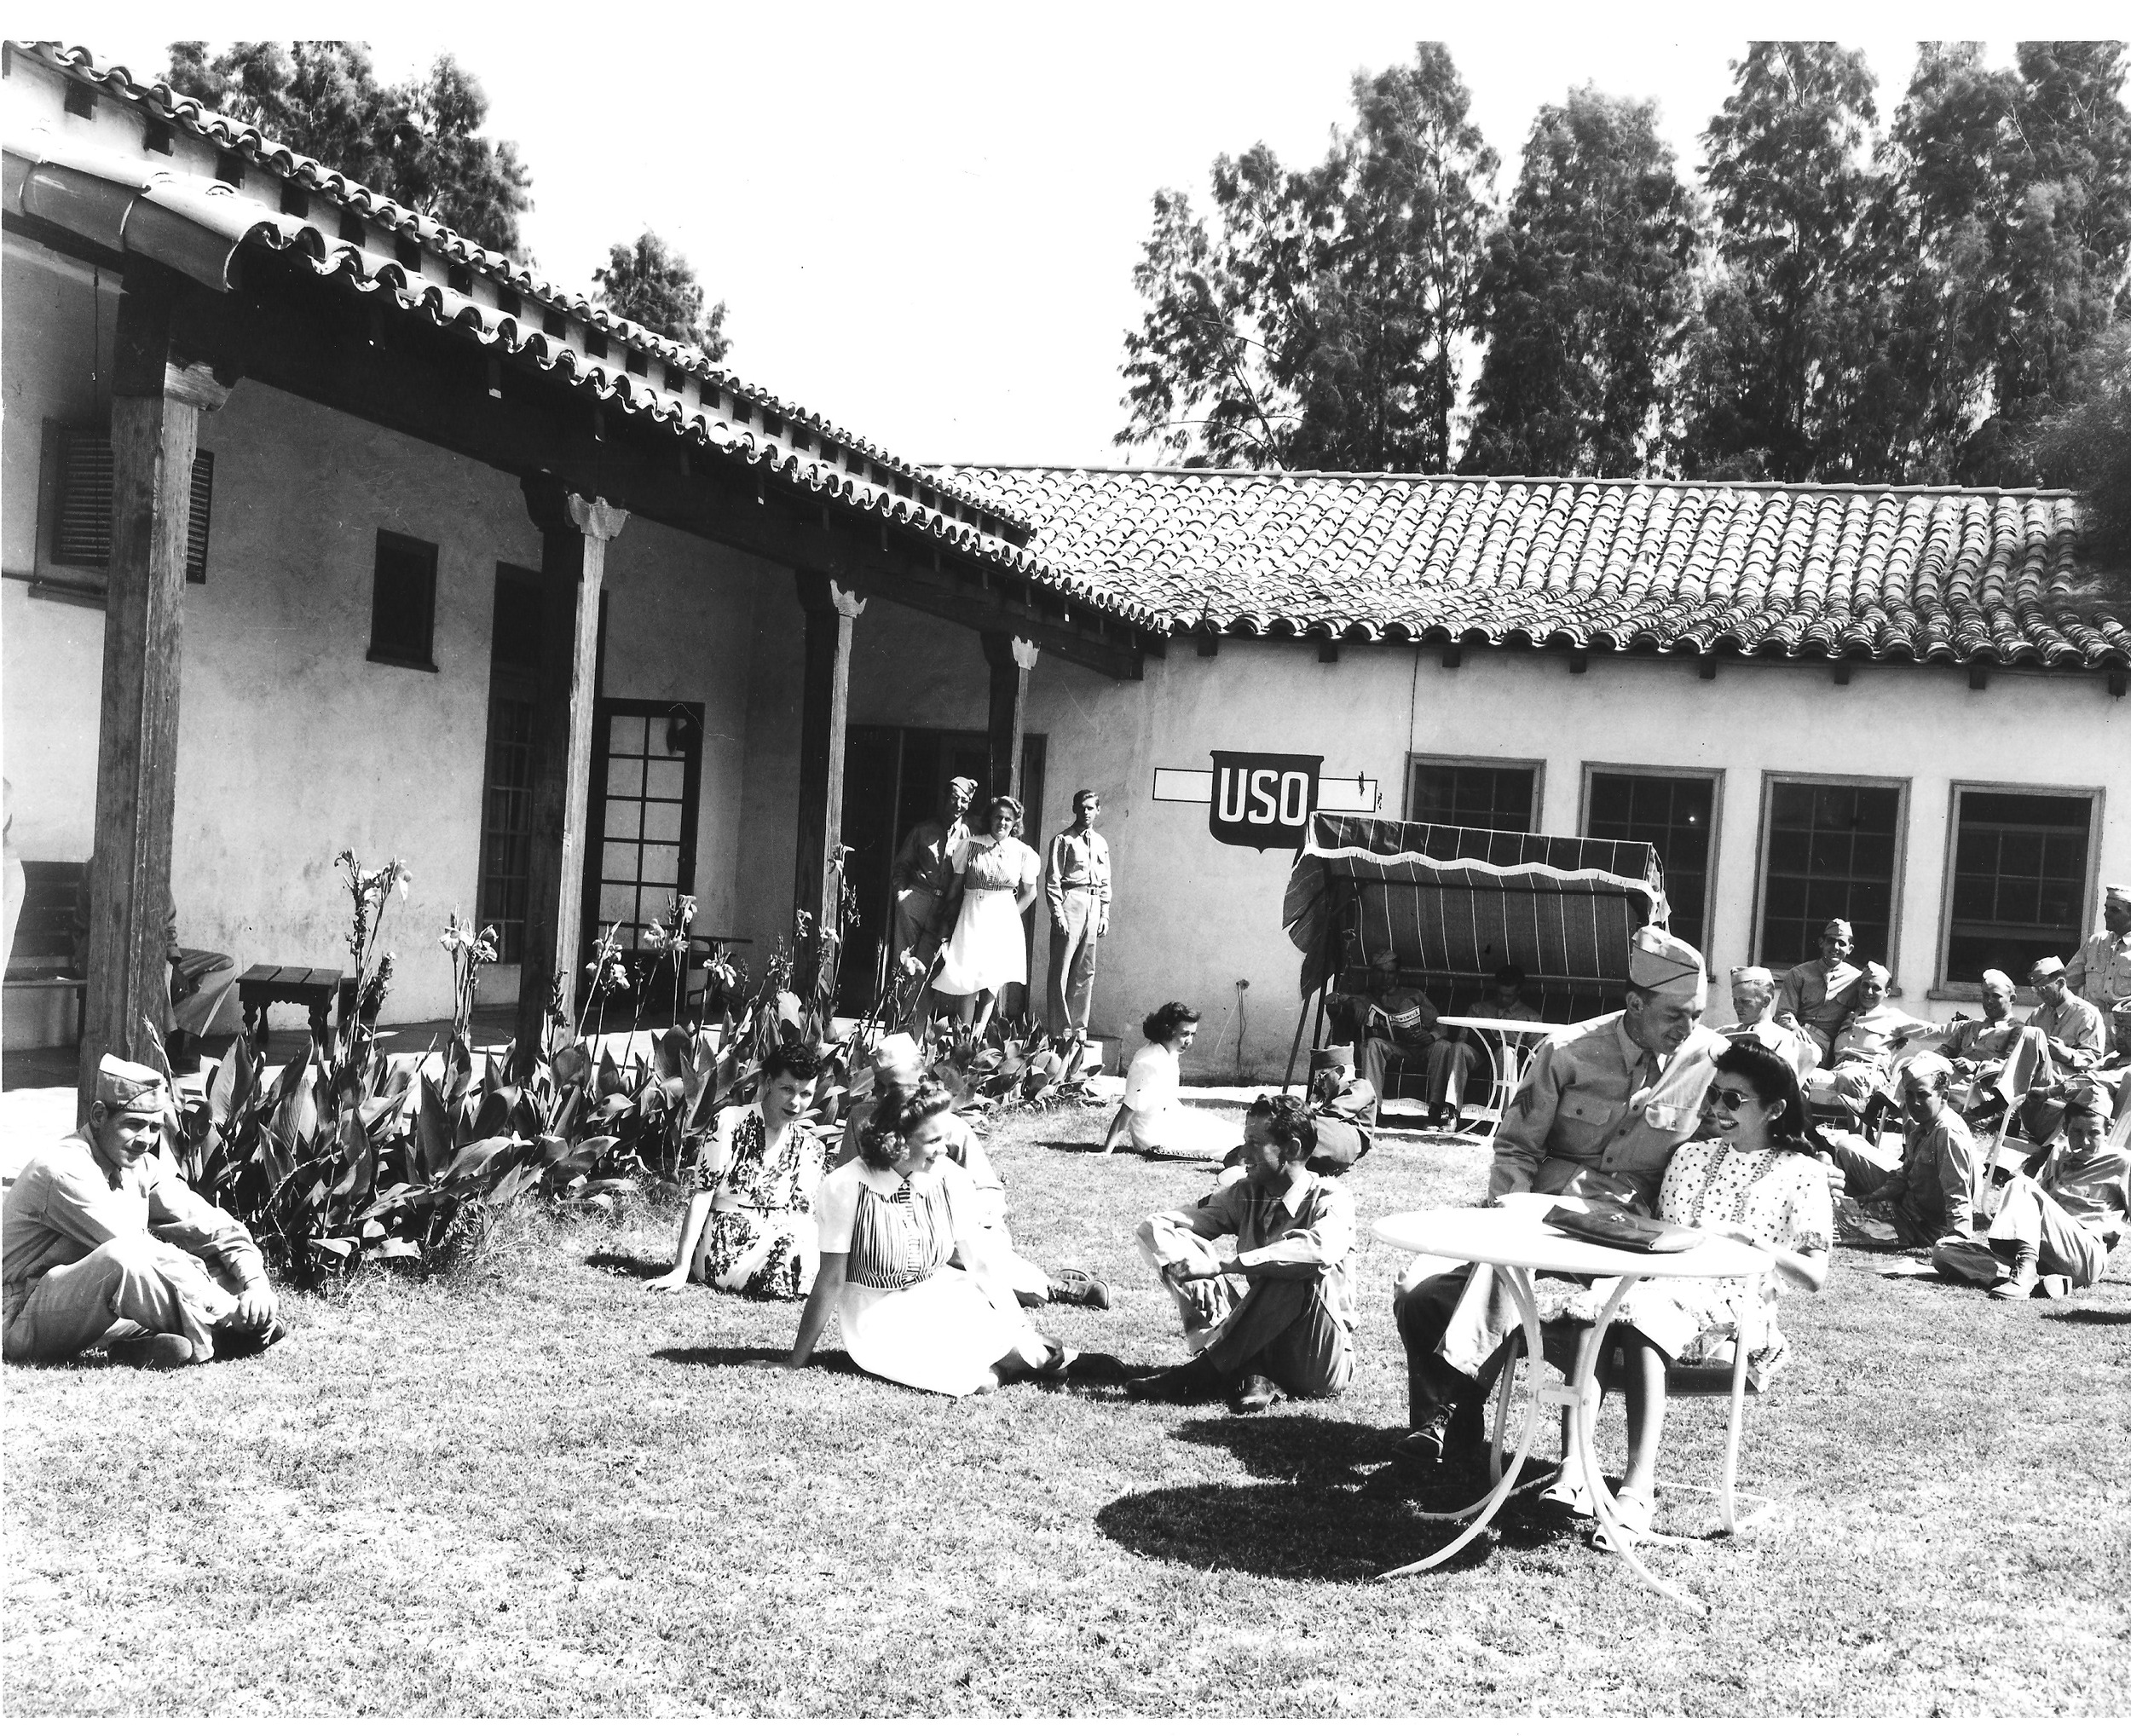 White soldiers relax at the Indio USO in June 1942. Black soldiers were segregated to subpar USO facilities, though the local black community worked hard to provide entertainment and recreation space for the troops. U.S. Army photography, courtesy of the General Patton Memorial Museum.